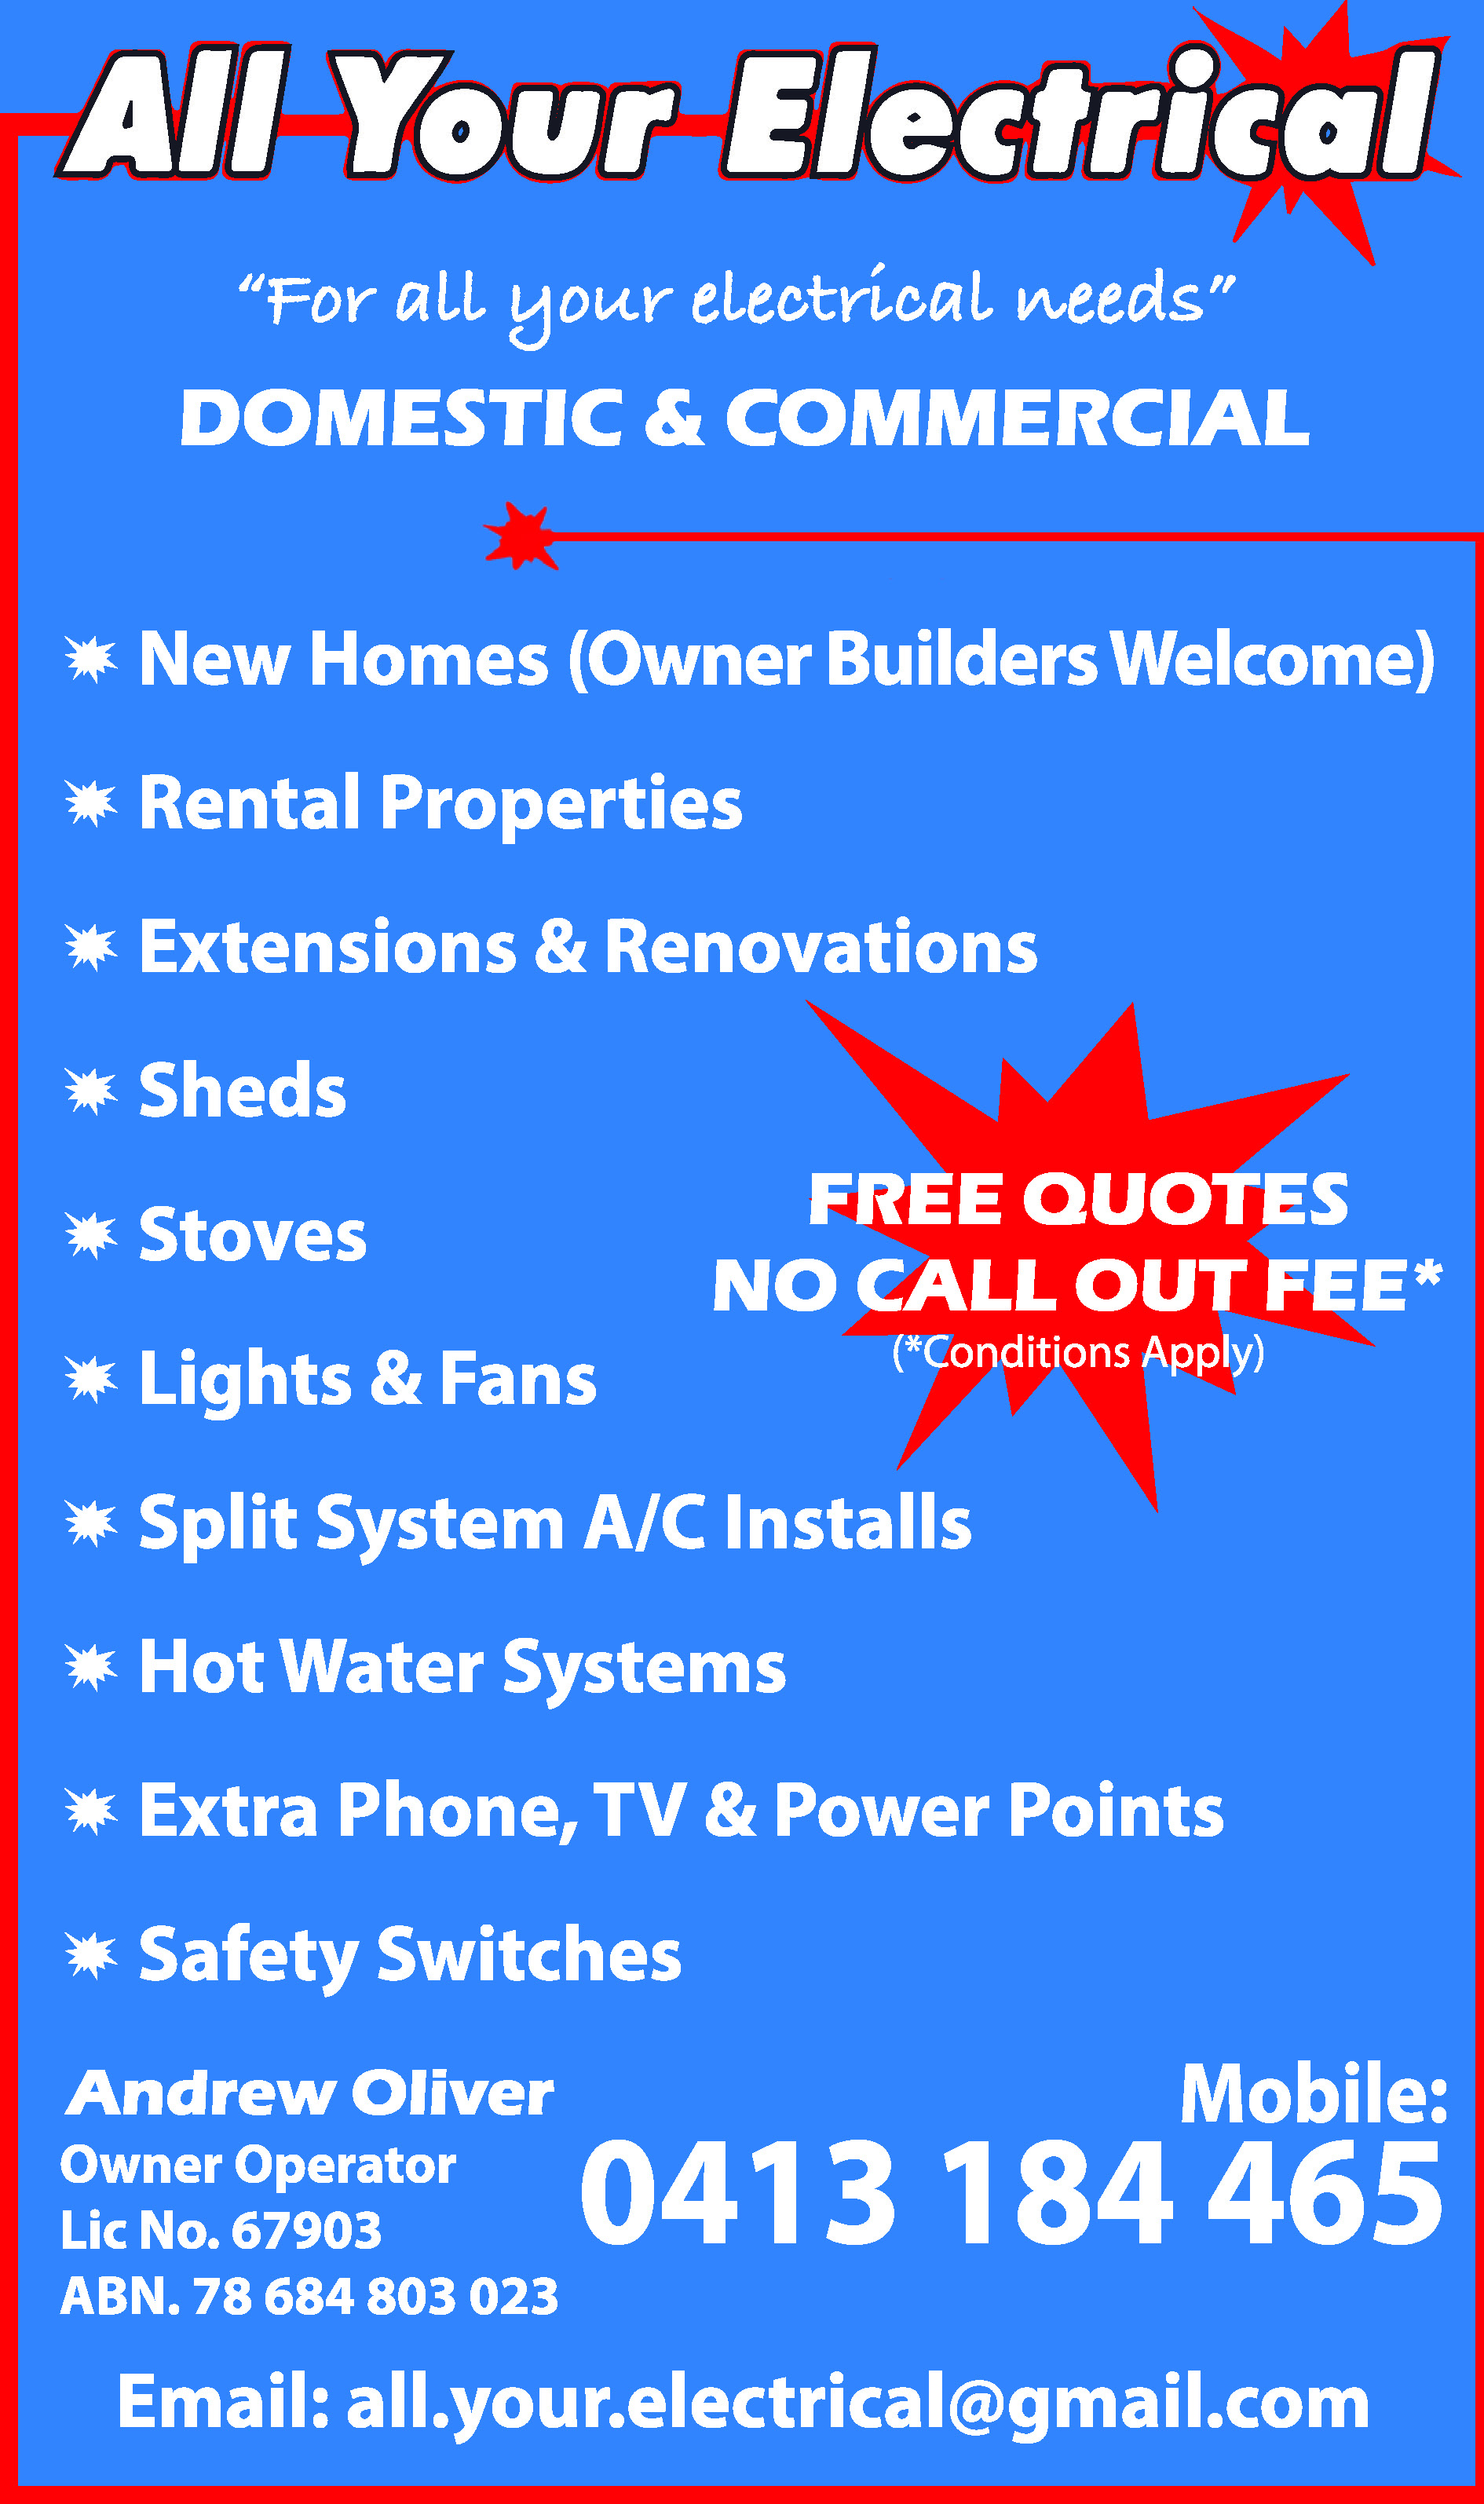 All Your Electrical - Electricians